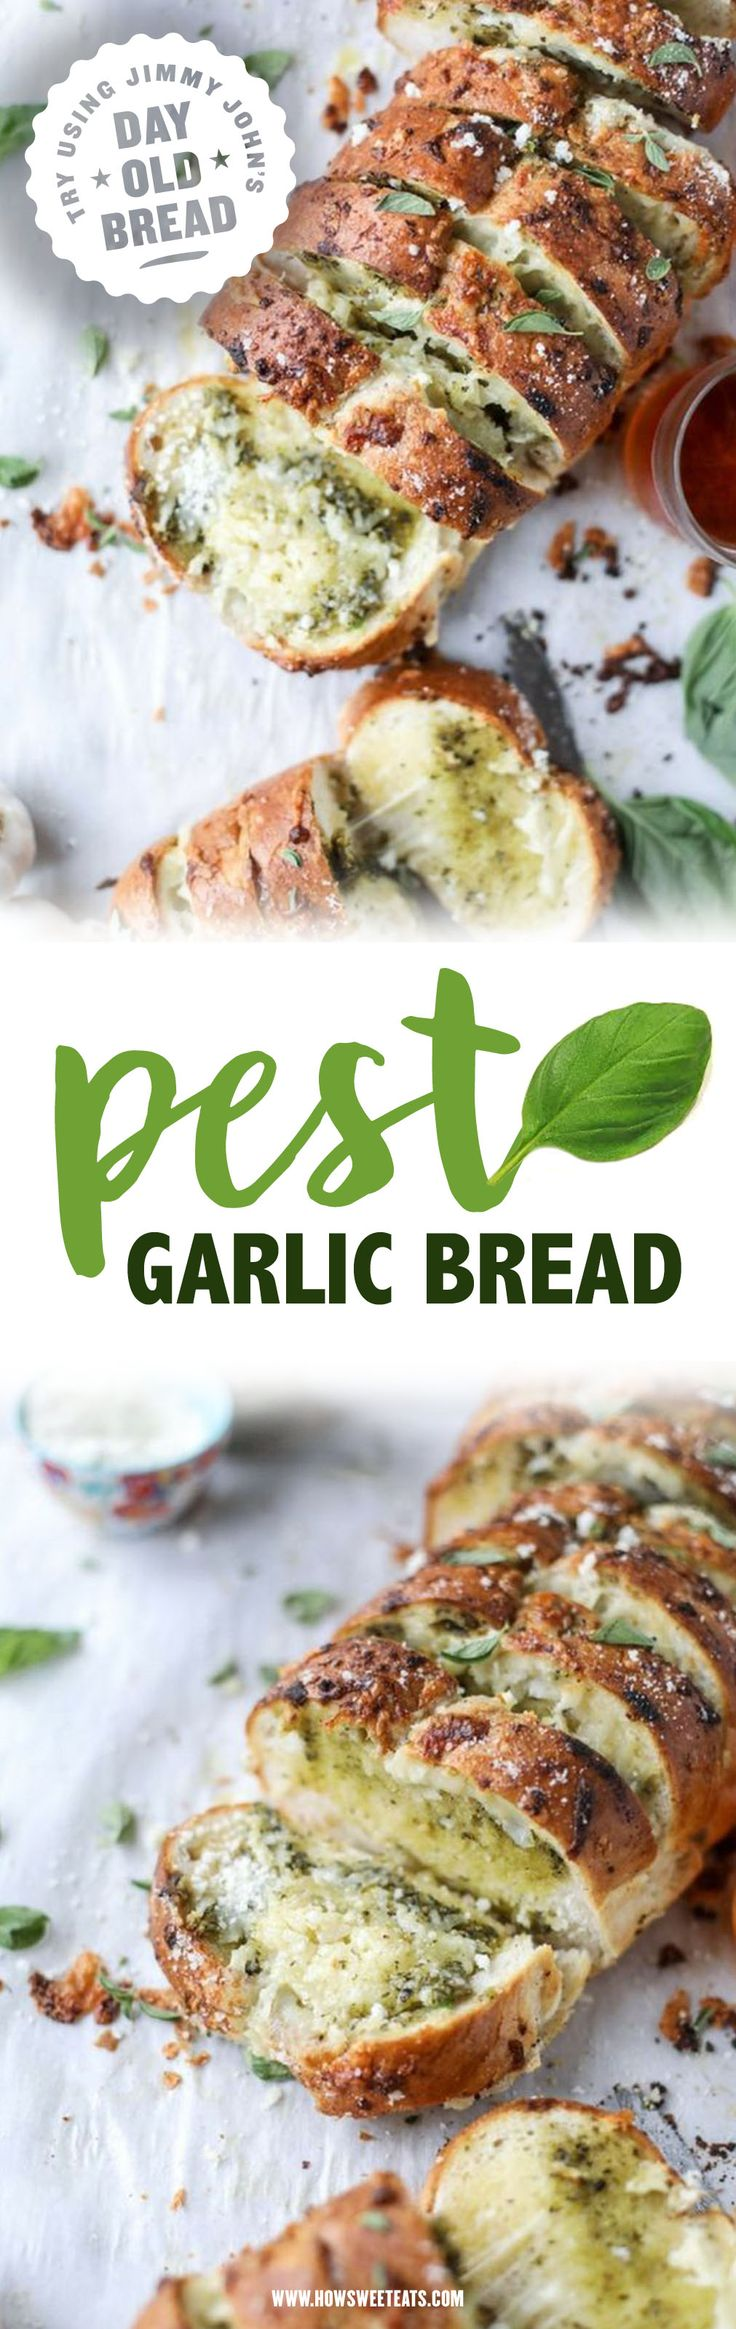 Cheesy Pesto Garlic Bread. Try using Jimmy John's Day Old Bread to make this yummy appetizer for the whole family!